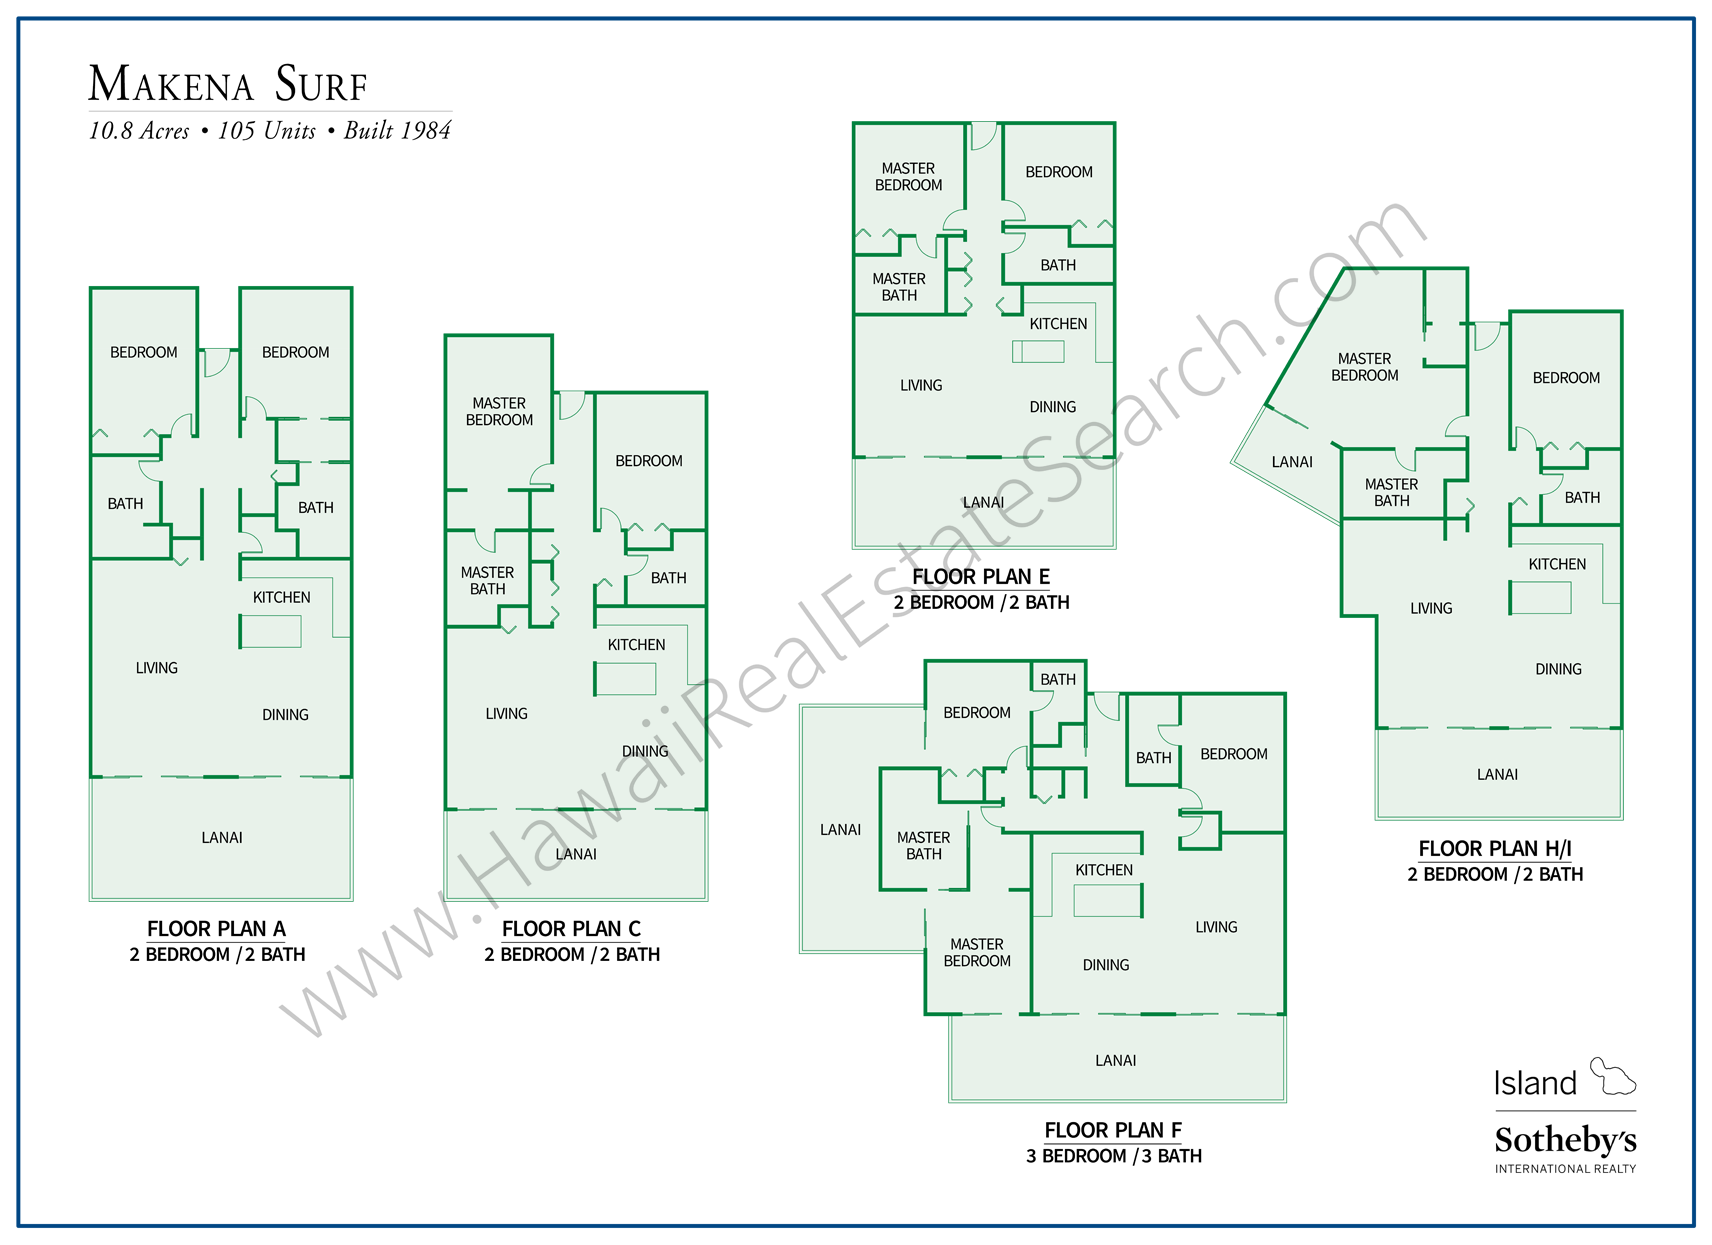 makena surf floor plans 2018